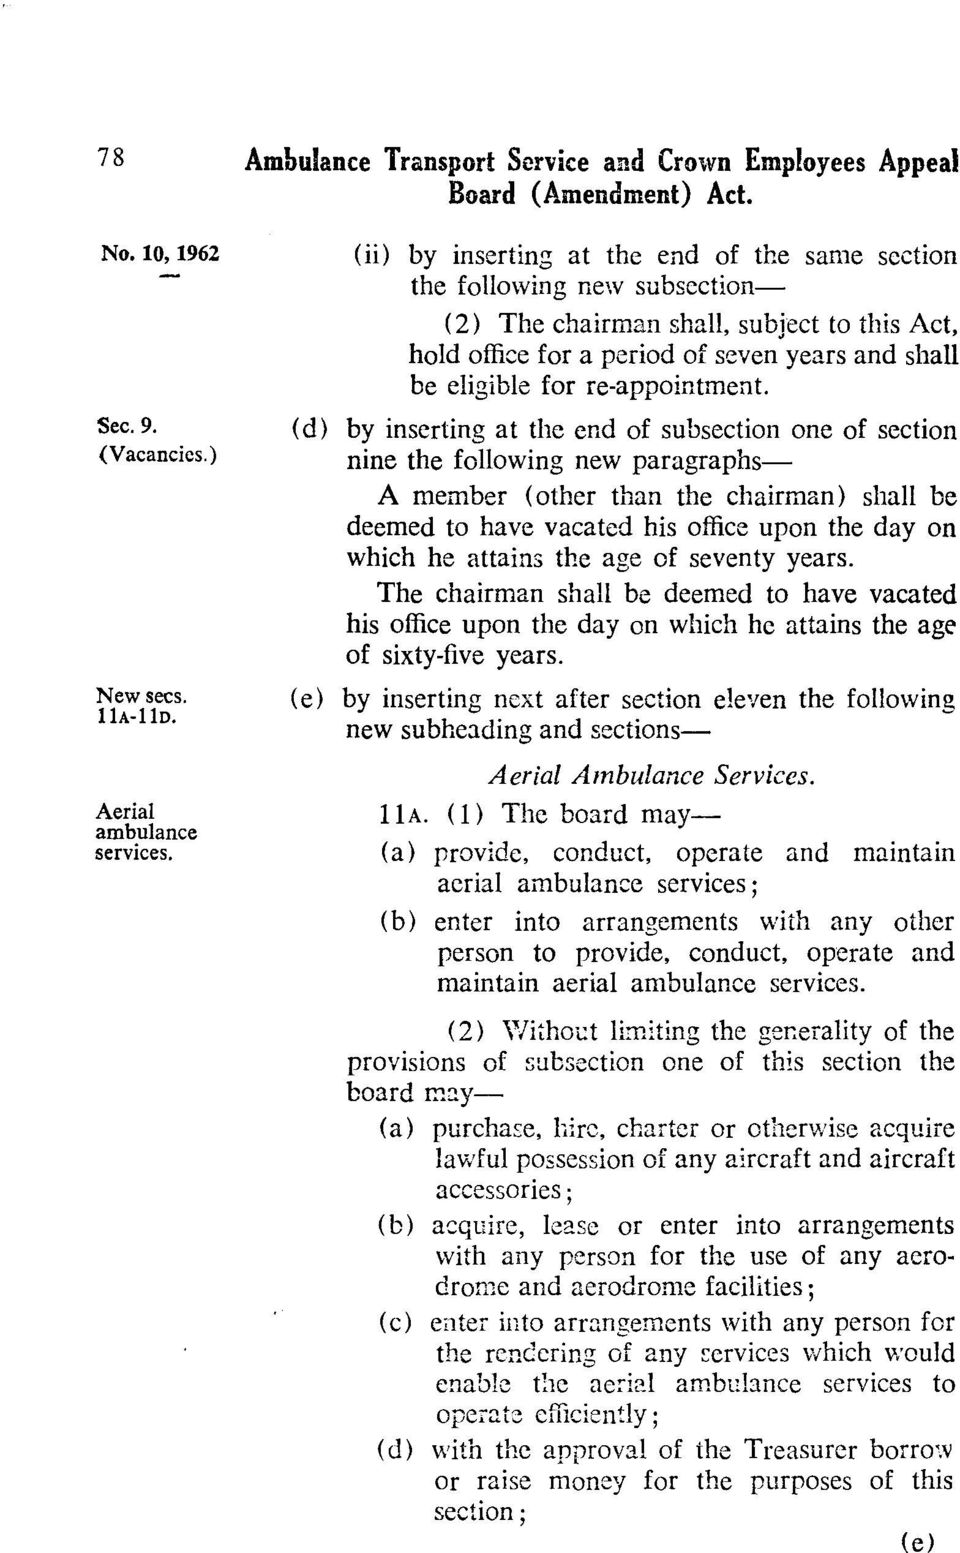 (d) by inserting at the end of subsection one of section nine the following new paragraphs A member (other than the chairman) shall be deemed to have vacated his office upon the day on which he